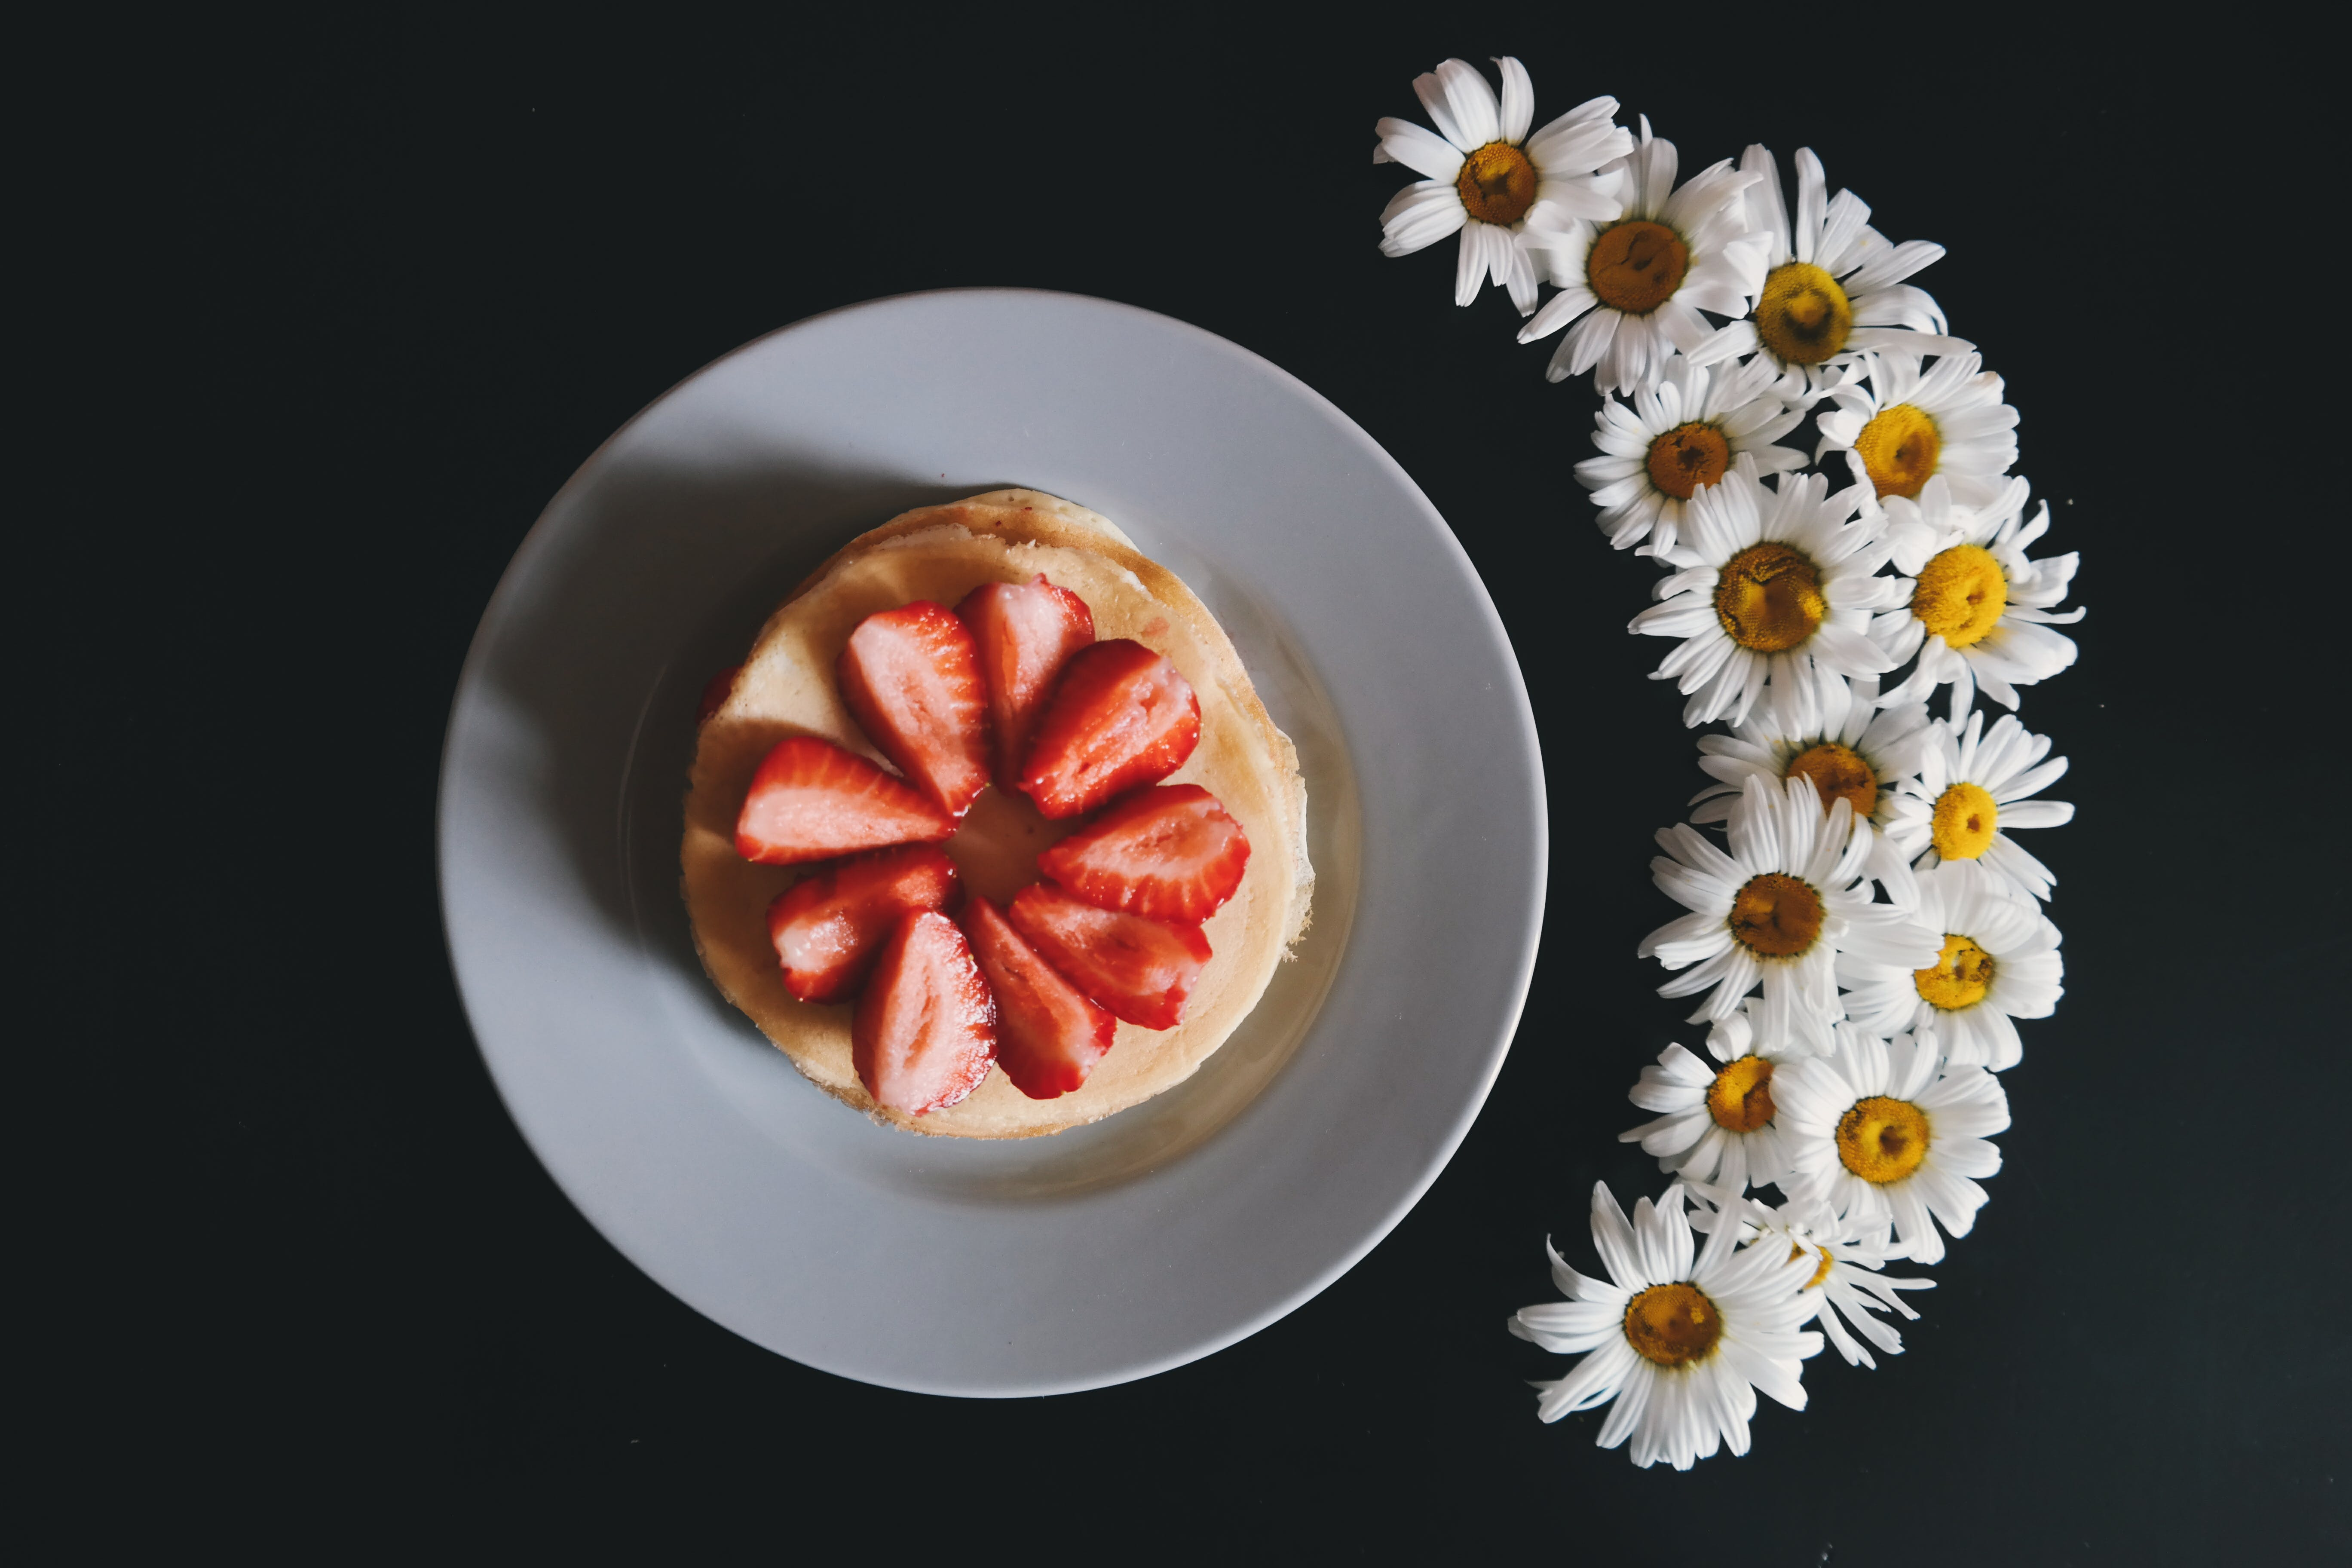 Round Pastry With Sliced Strawberries in White Plate